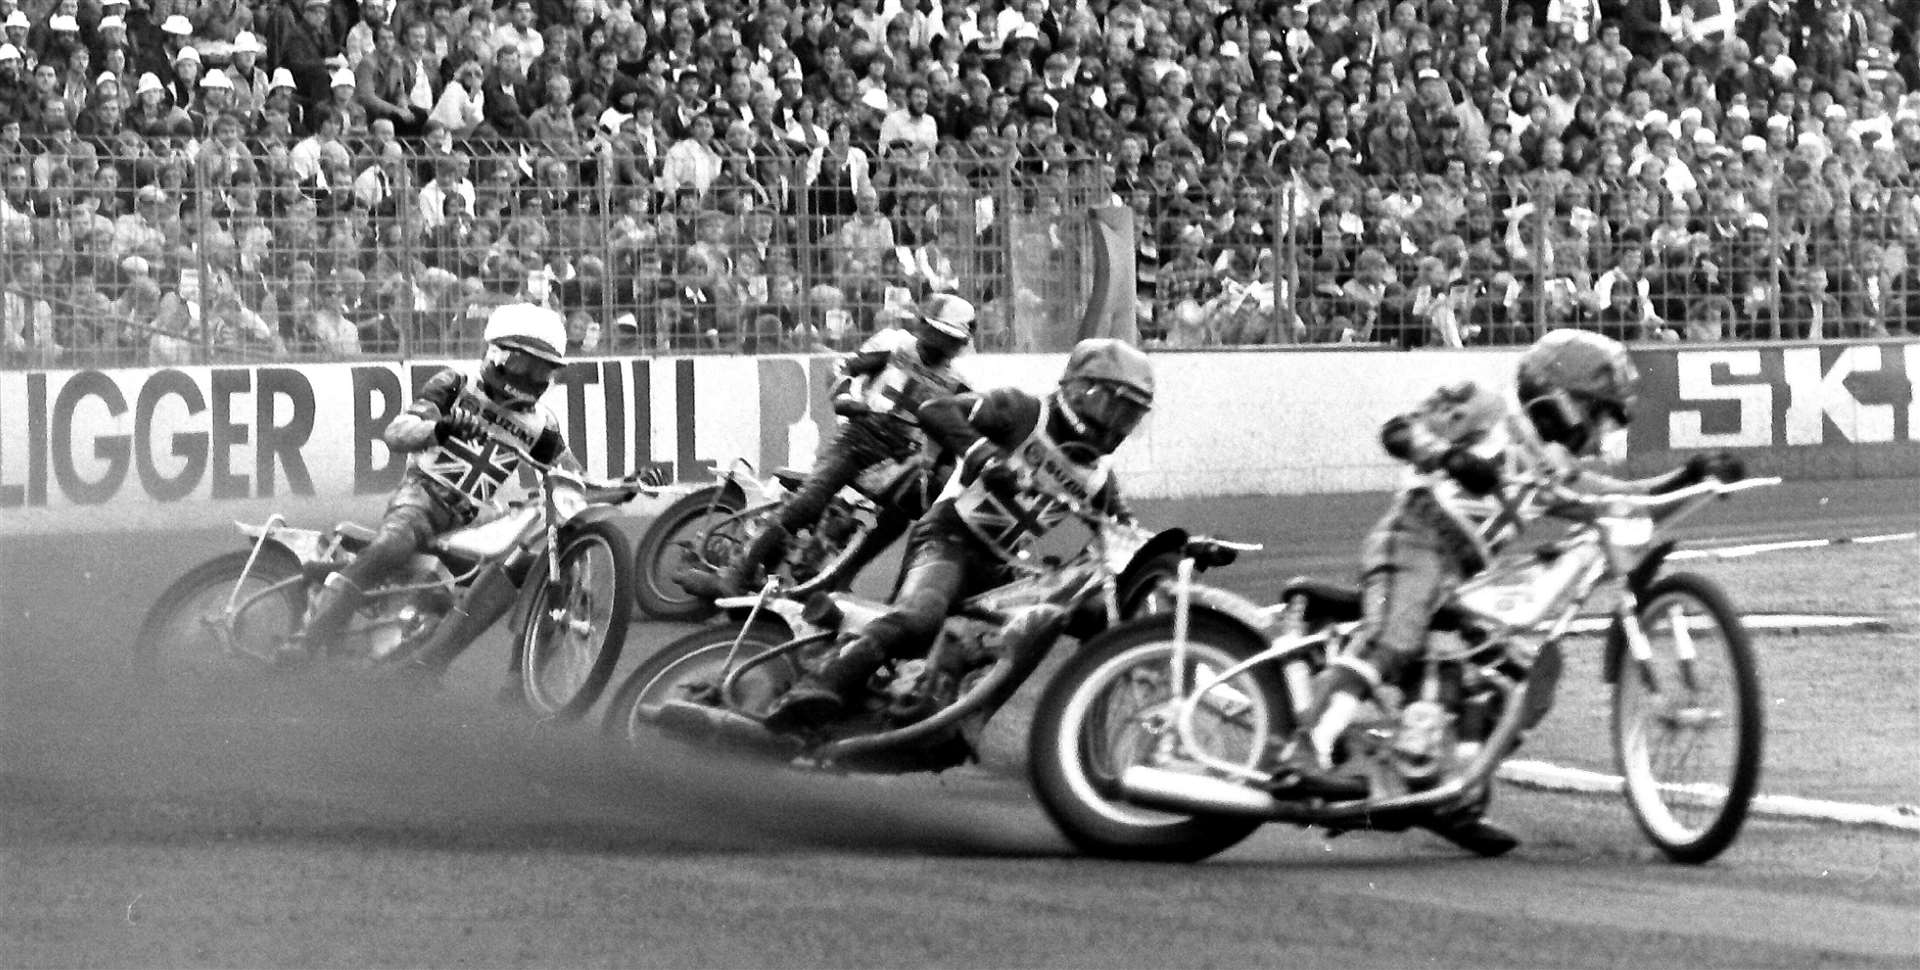 Follow the leader: The fast-starting Dave Jessup leads the field in heat 3 from fellow Englishmen Michael Lee and Peter Collins, with Kai Niemi at the back. MNLF-WC597 (39283383)